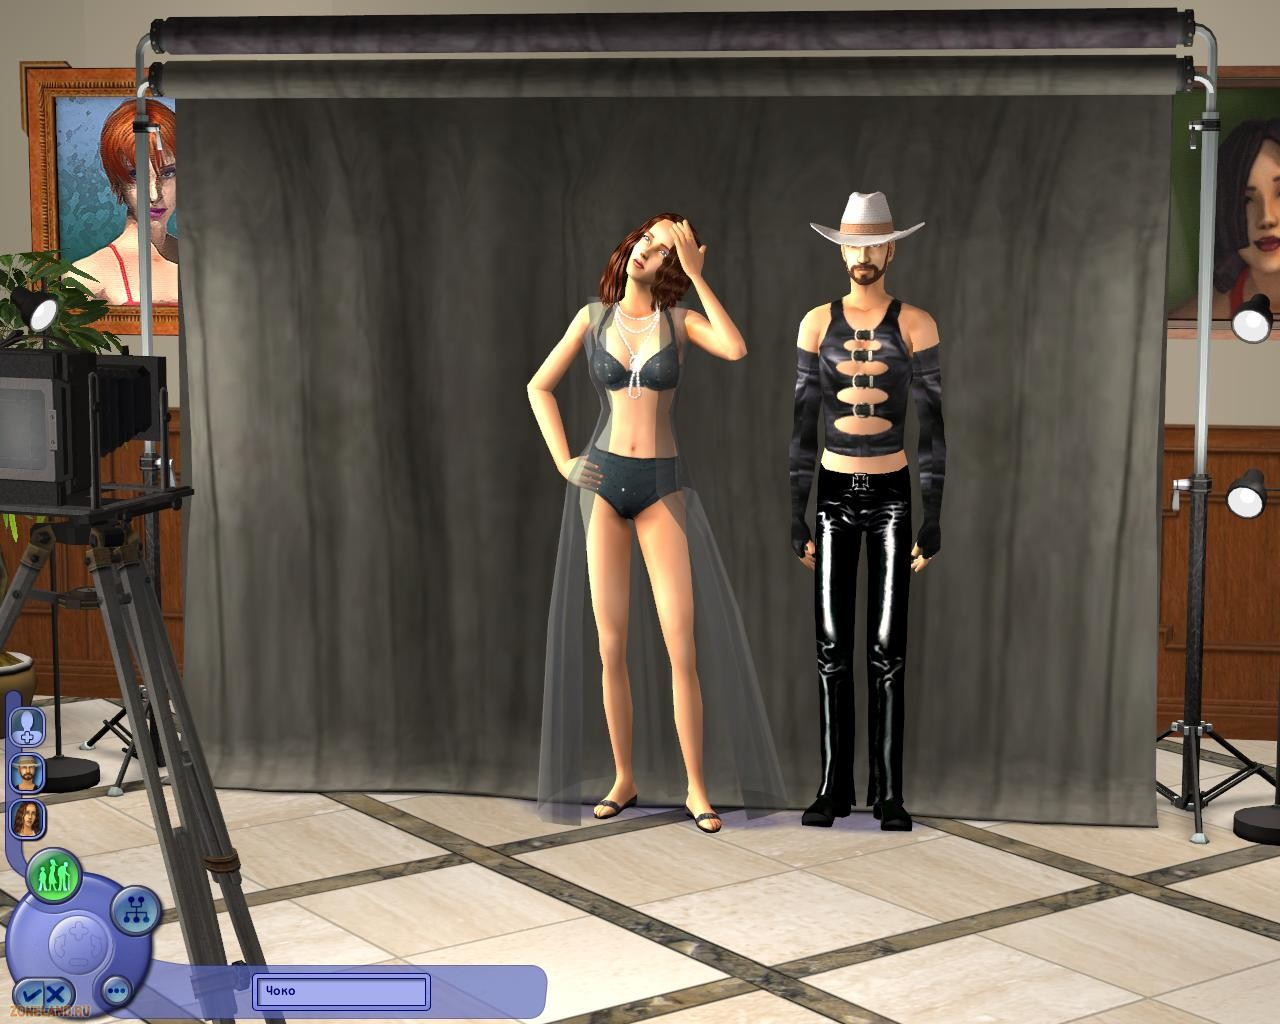 The sims 2 erotic nackt pic